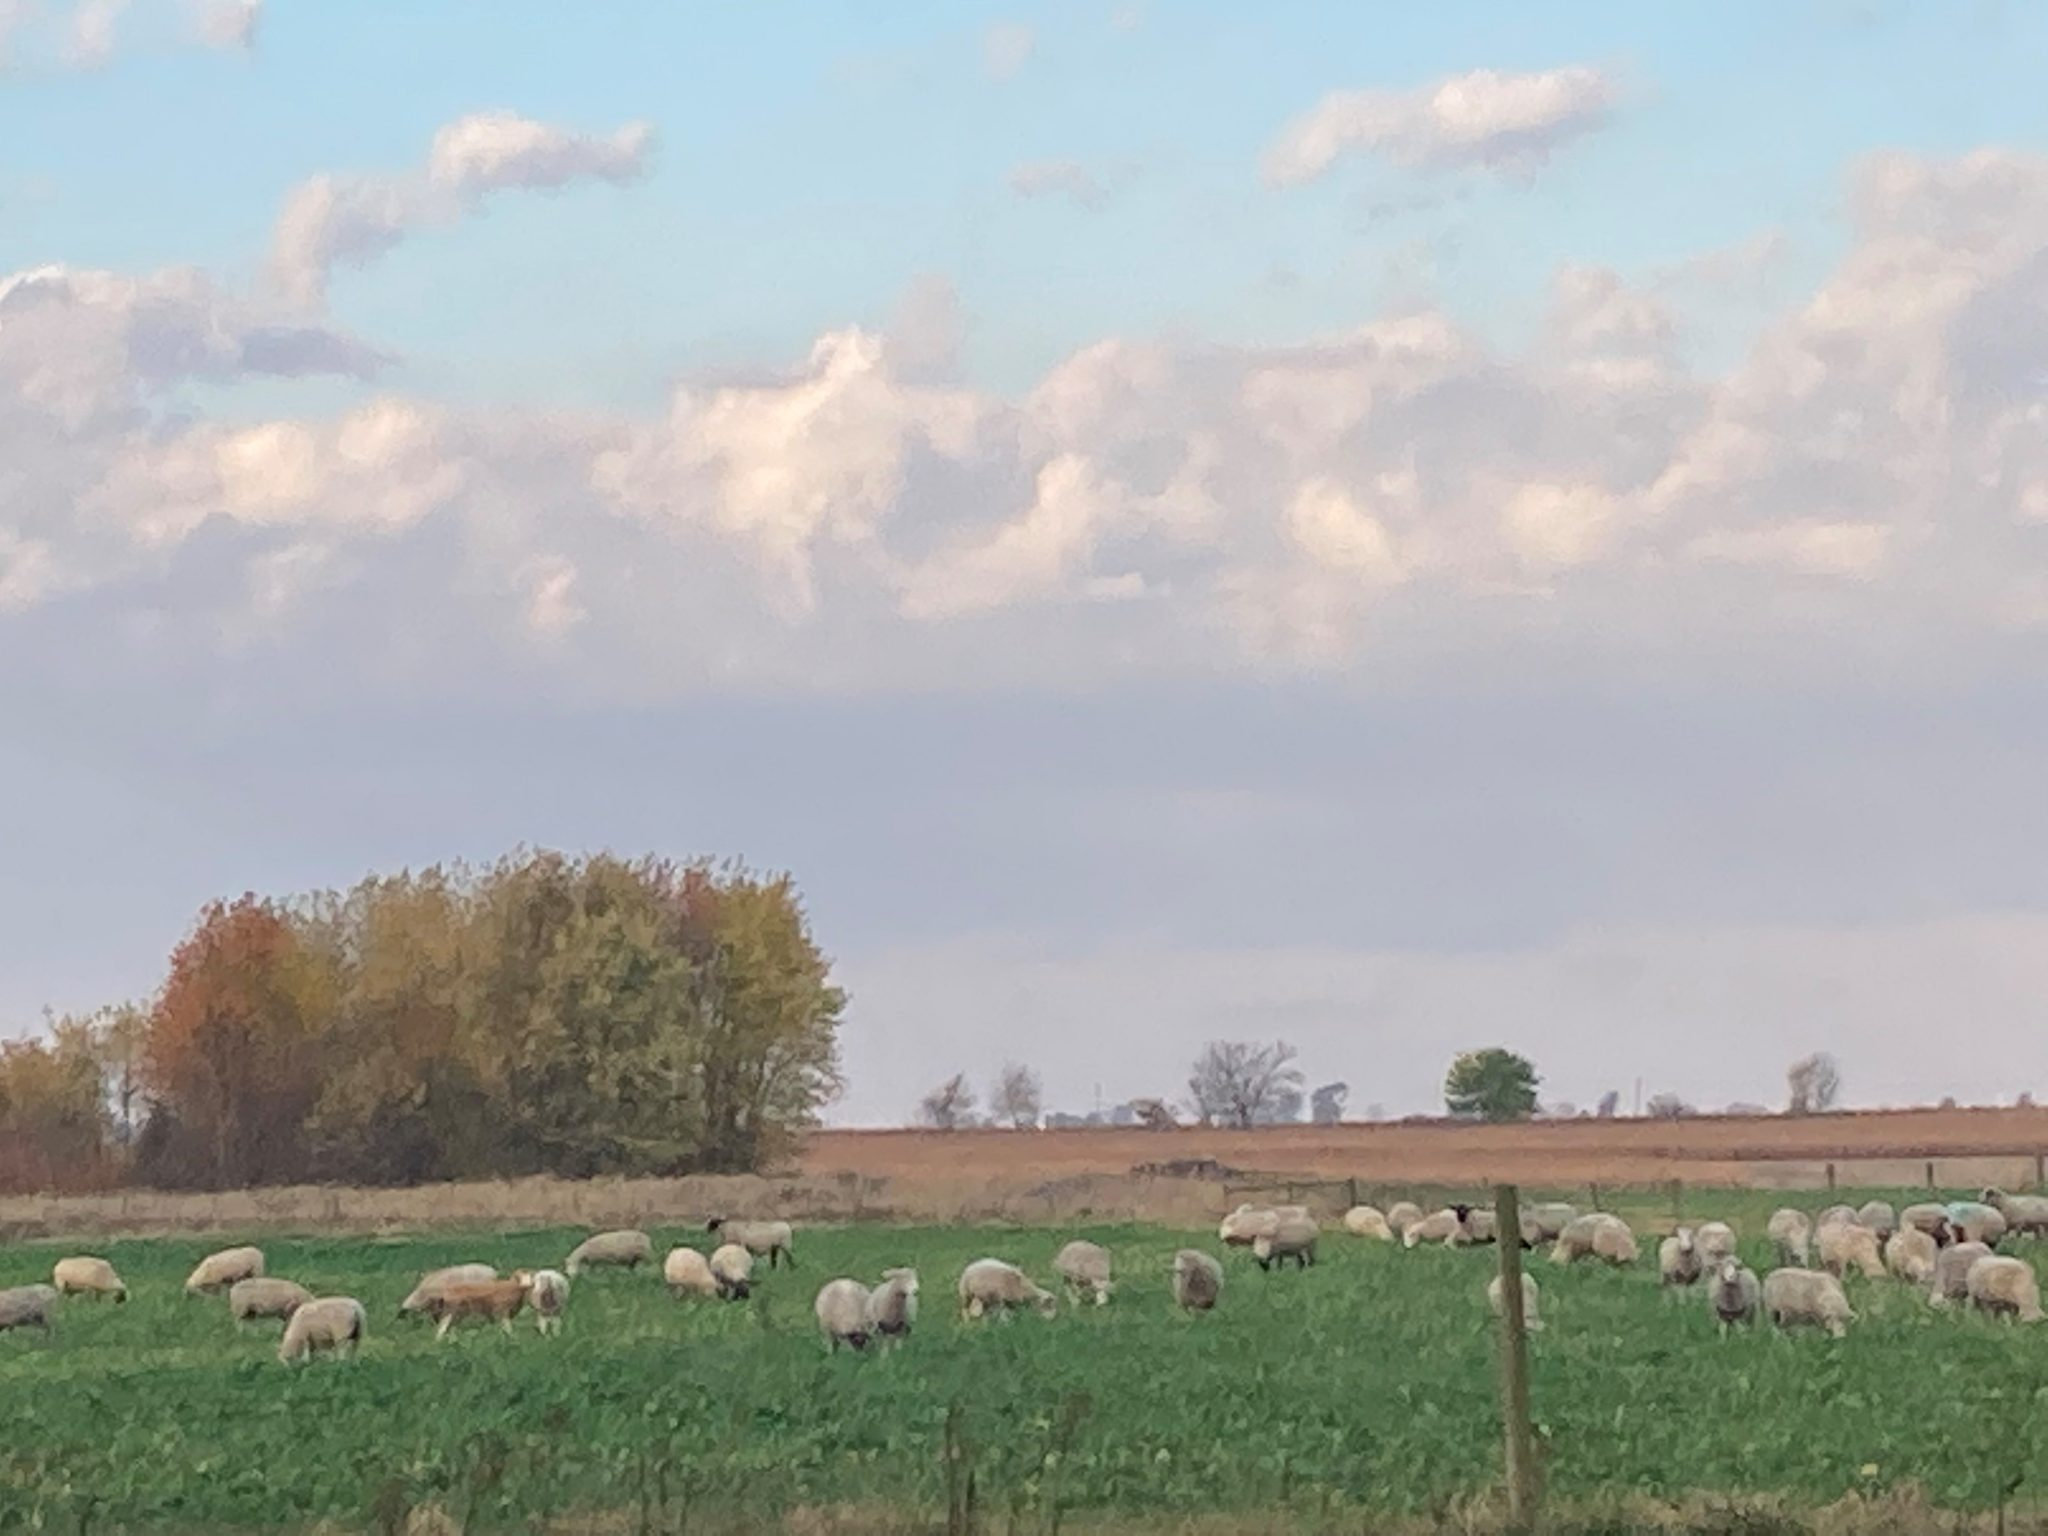 Sheep grazing a cover crop mixture of forage turnips and small grains. (Photo Credit: Keith Johnson)